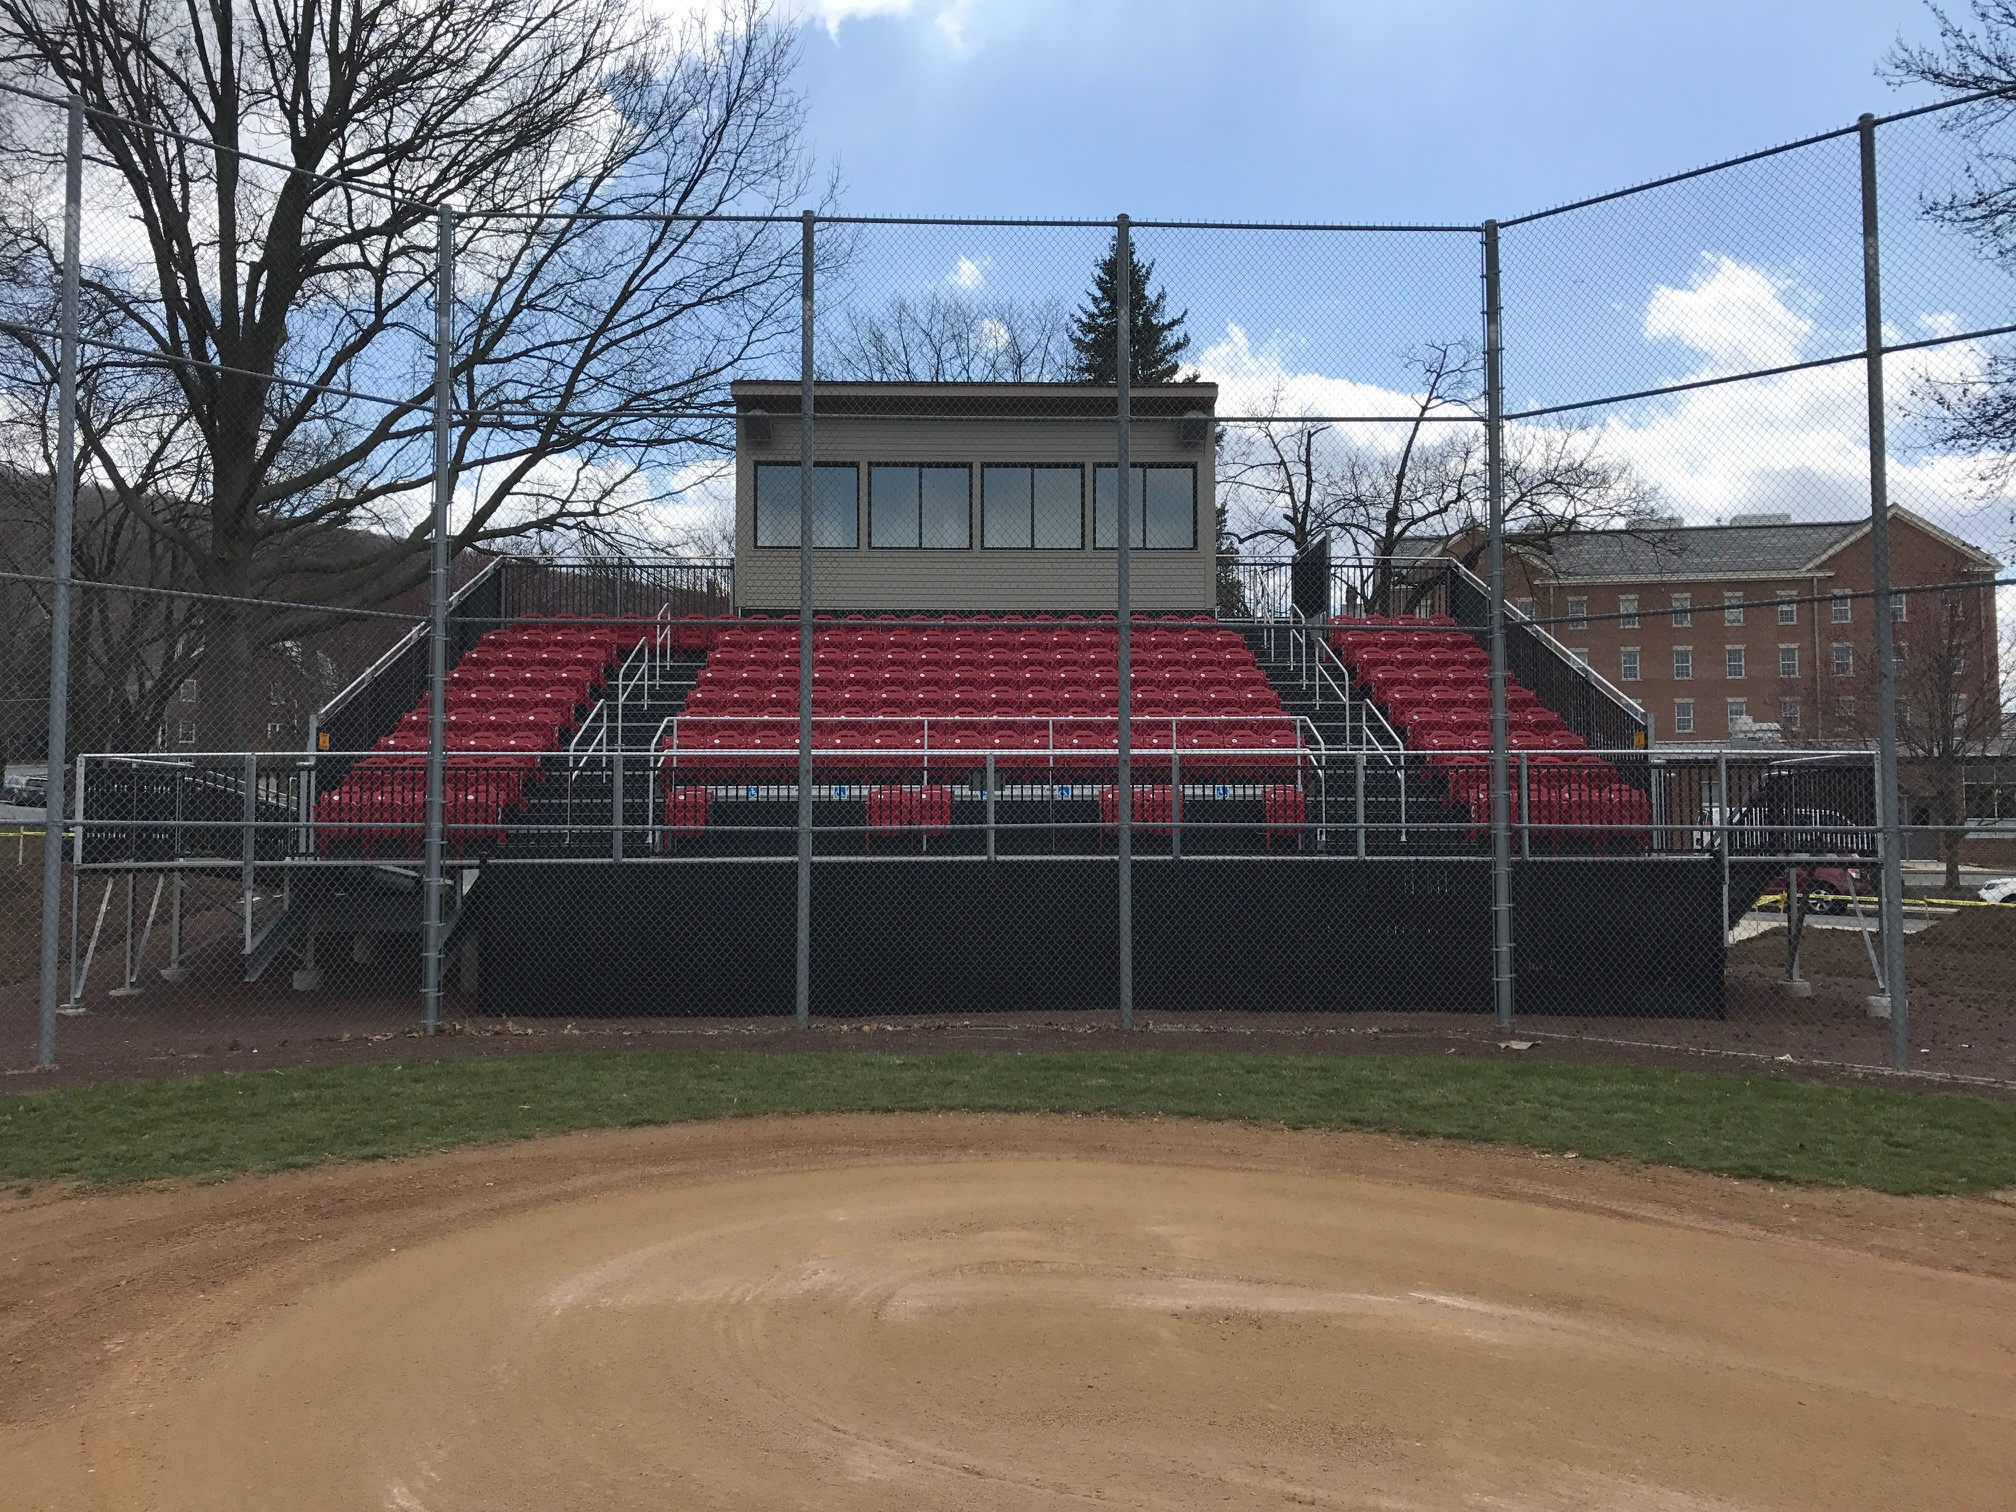 Albright College Baseball Bleachers